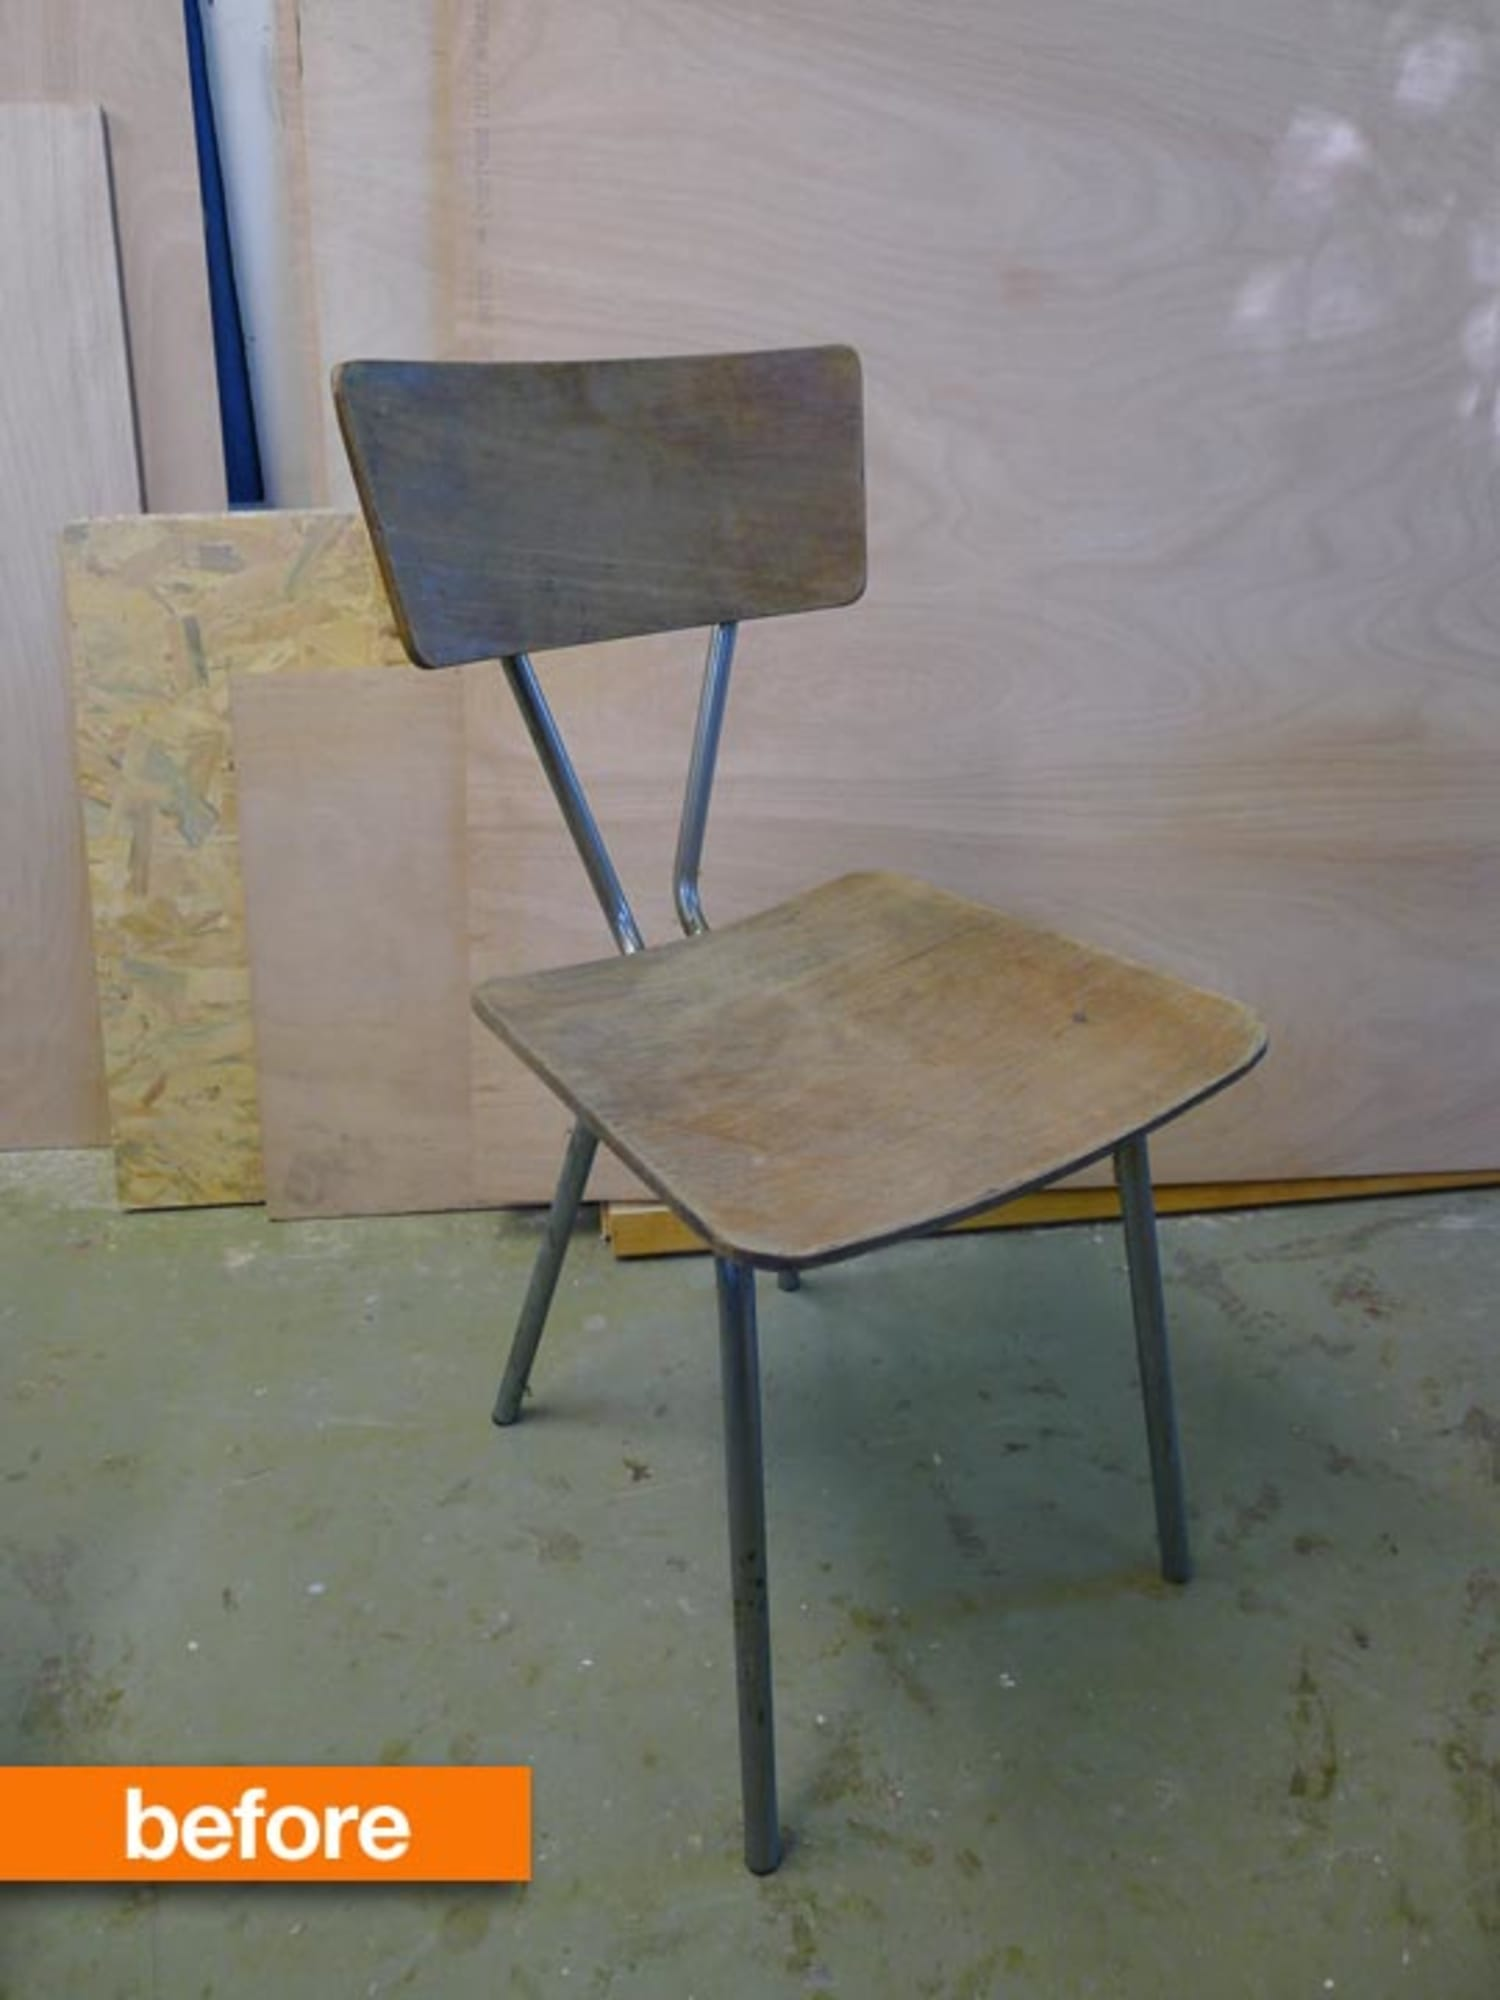 Before & After: Revamped 1970s Plywood Chair